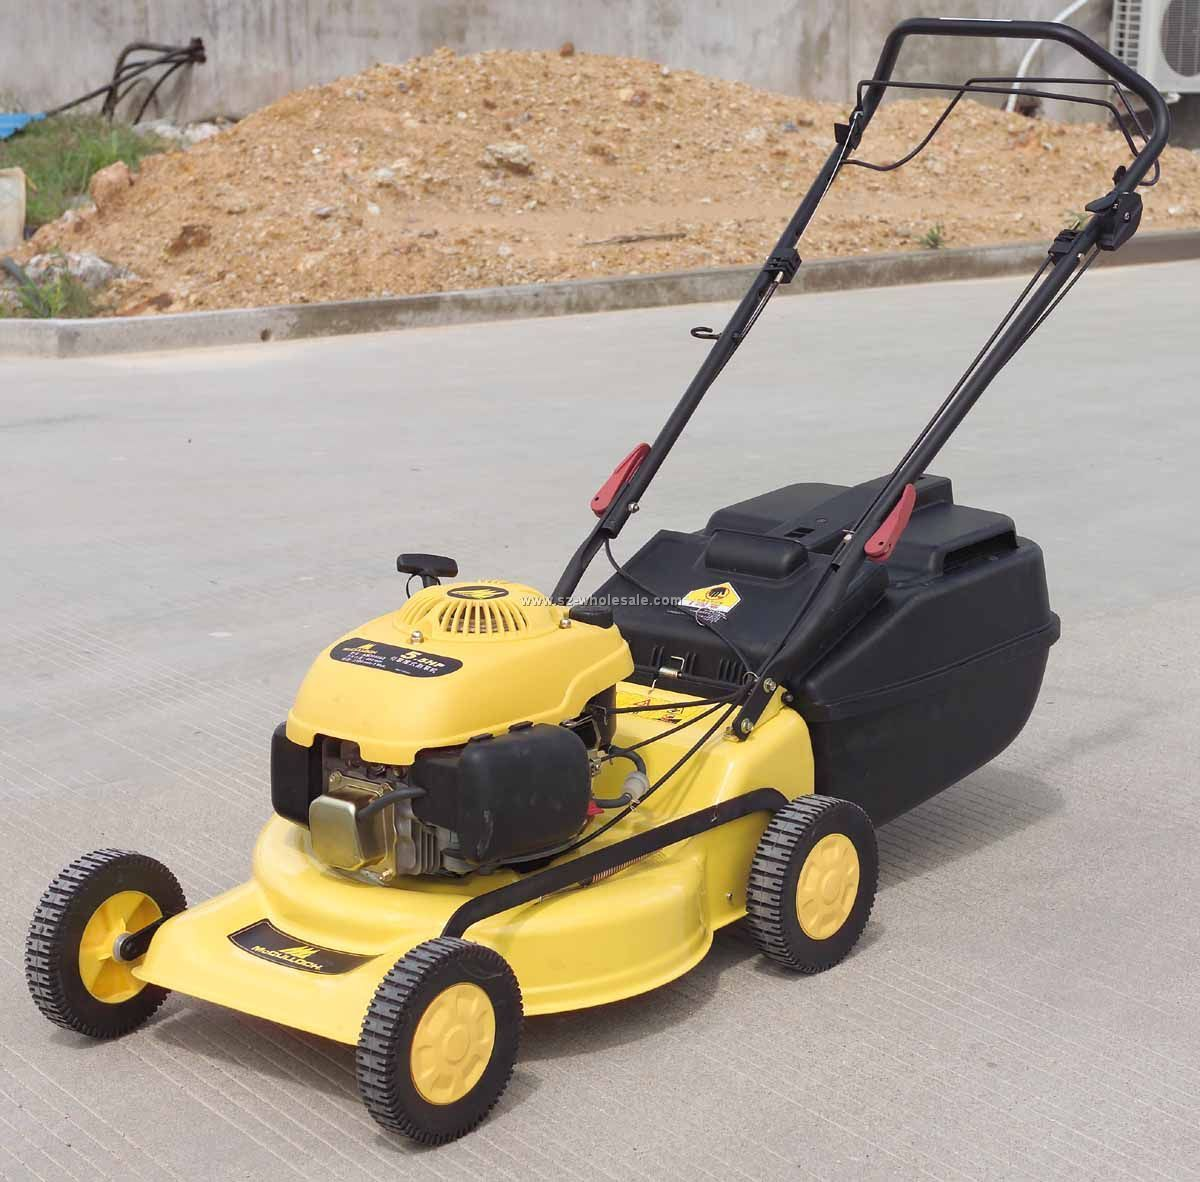 There Are Different Types Of Lawn Mowers Types Of Lawn Lawn Mower Mower